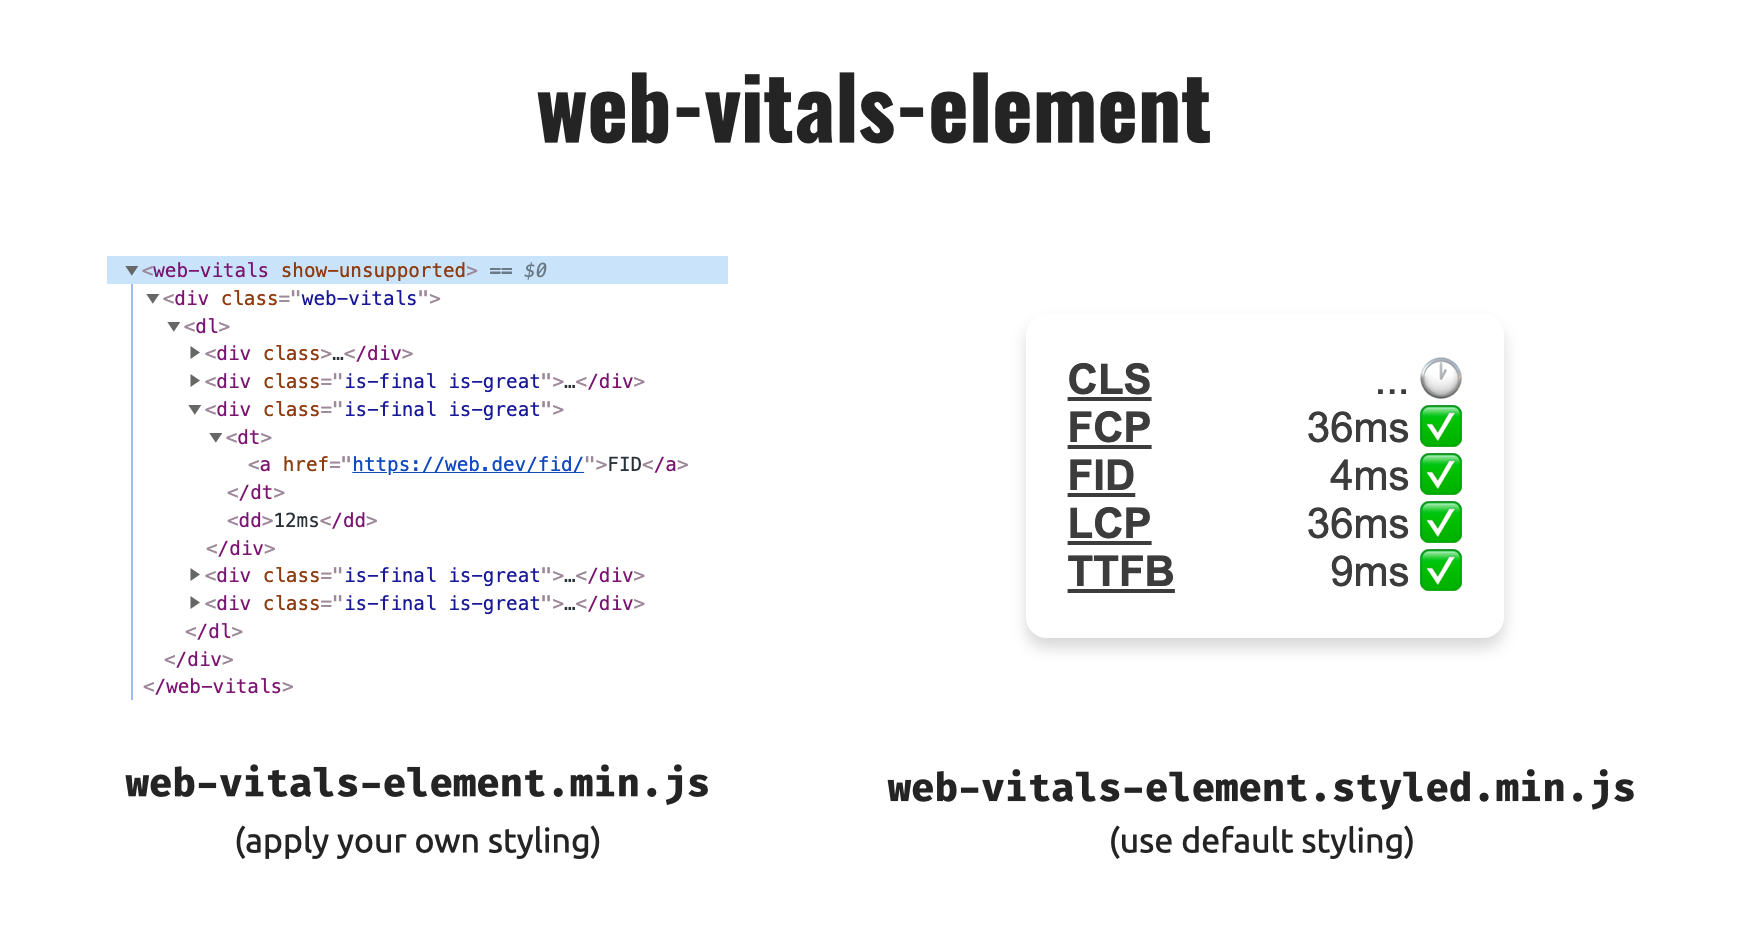 web-vitals-element in styled and unstyled version